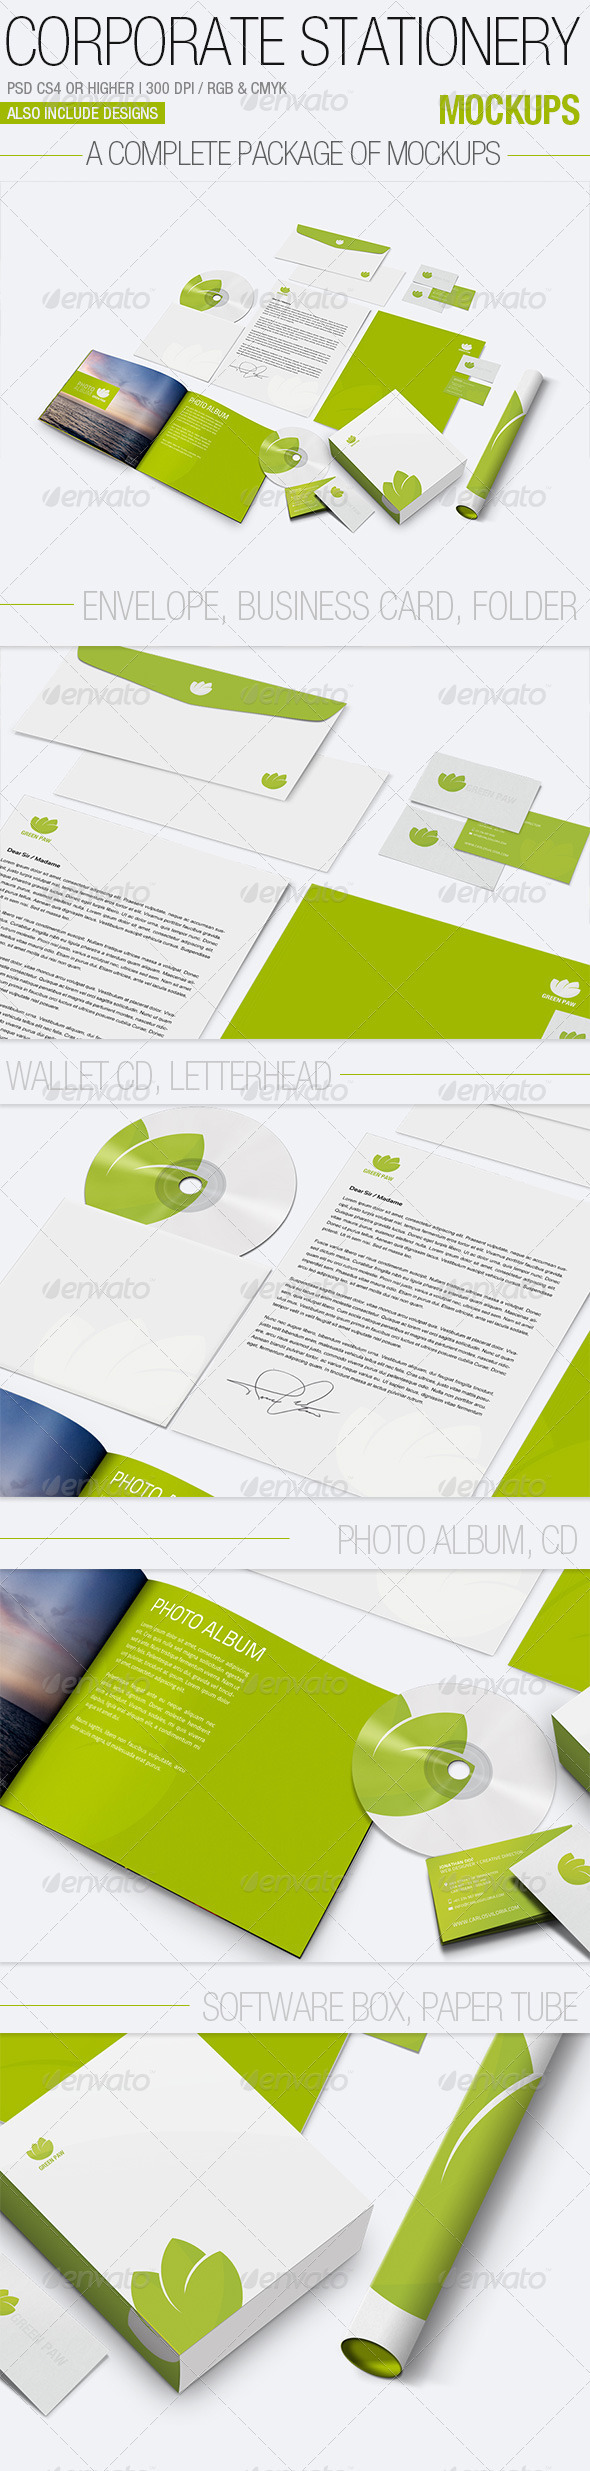 Corporate Stationery Mockups - Stationery Print